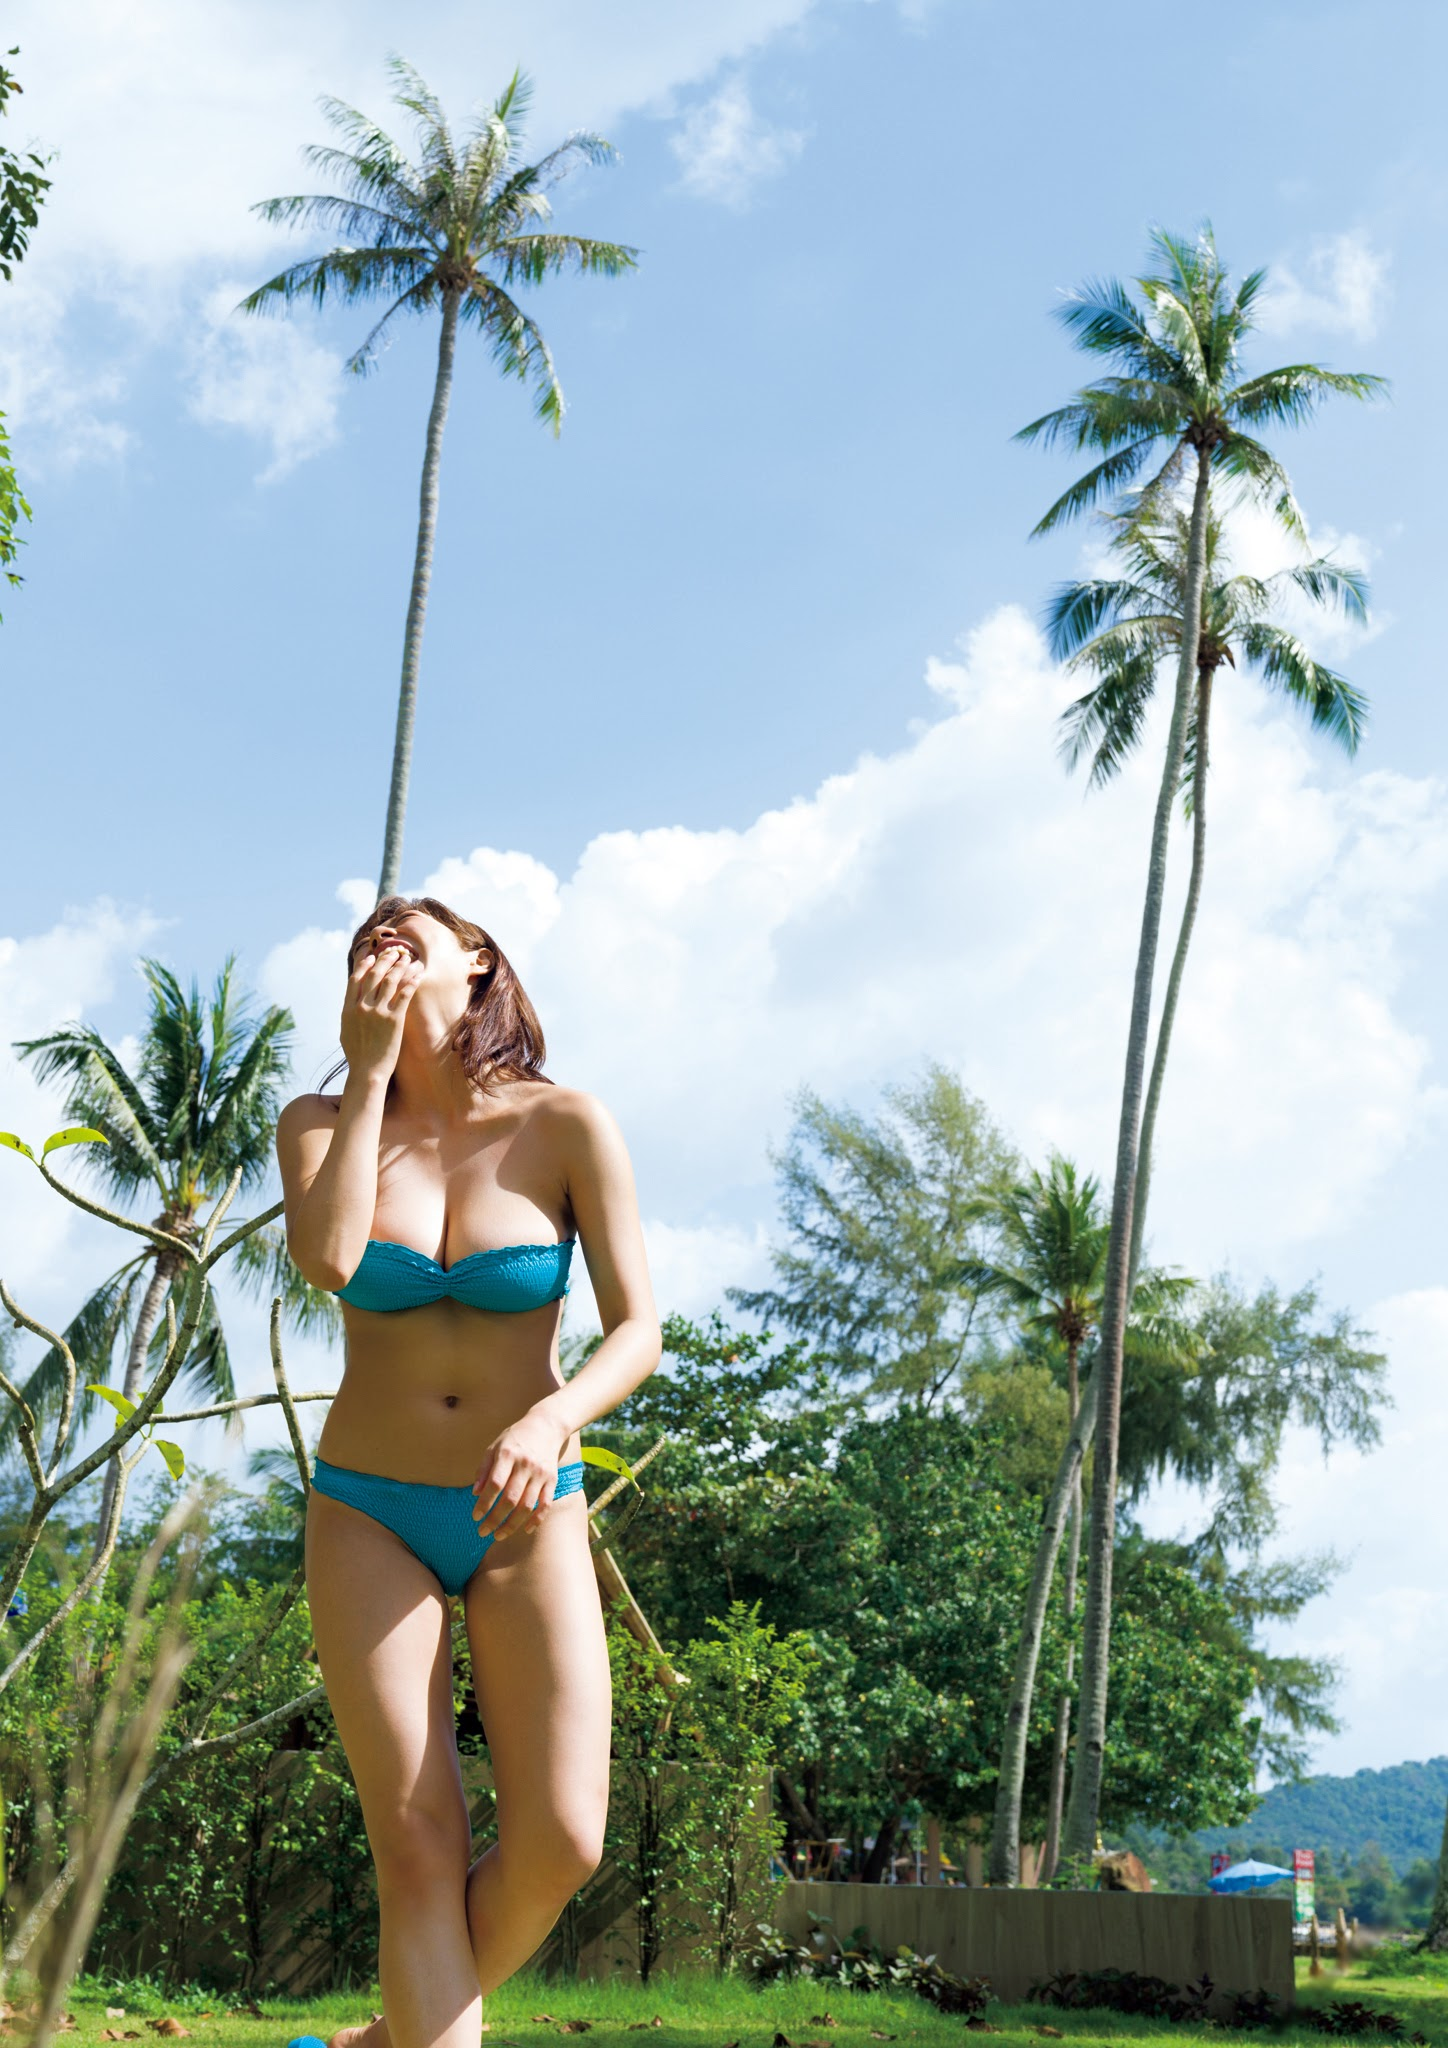 Super body of H cup Minami Wachi 2020 that exposes body and mind in tropical Thailand049